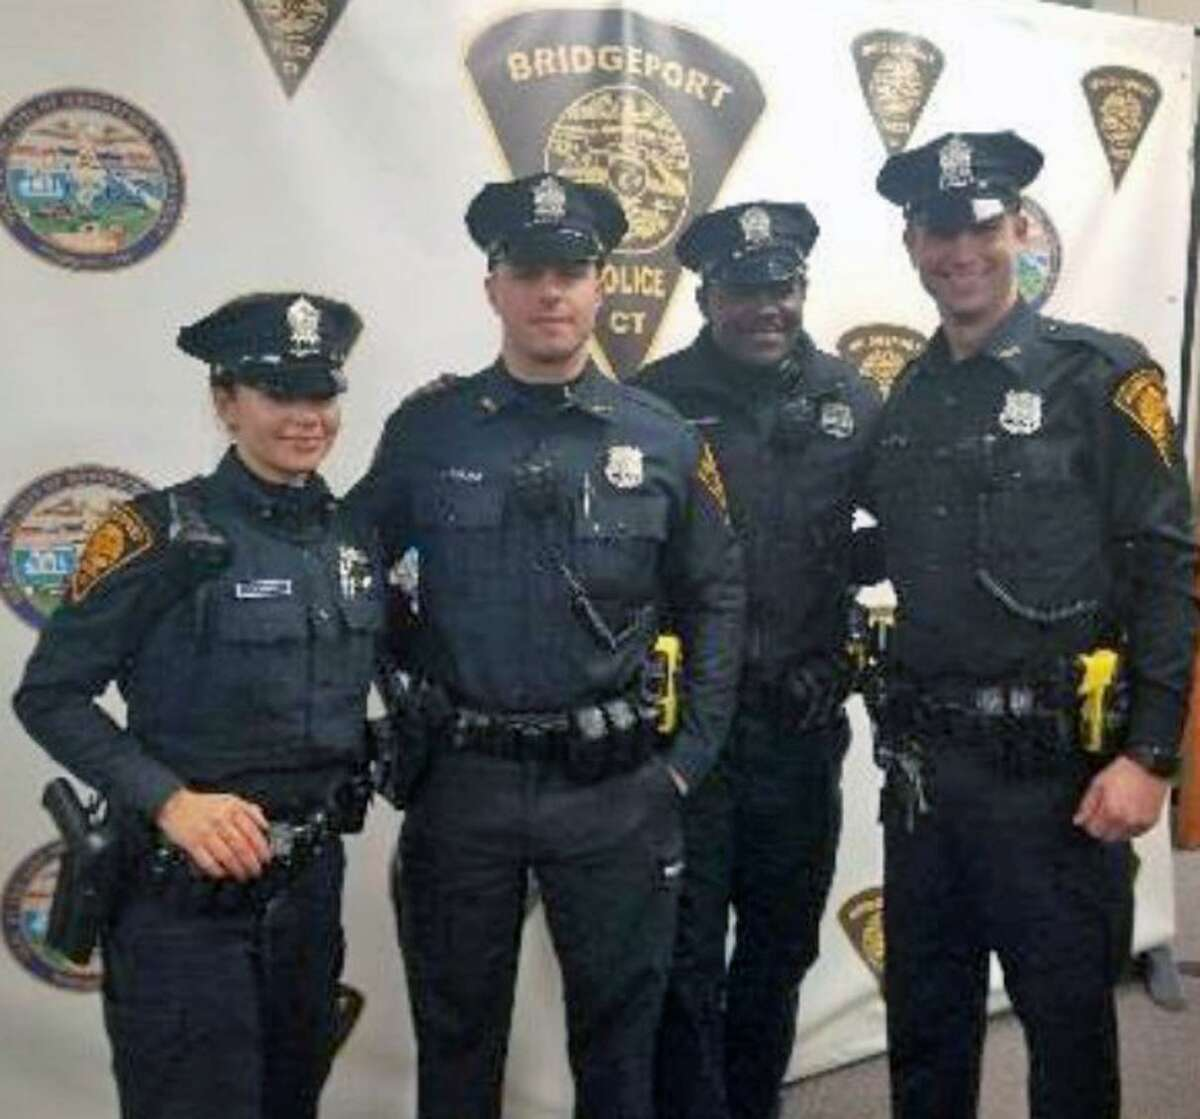 Several Bridgeport, Conn., police officers received awards at a ceremony on Jan. 29, 2019.